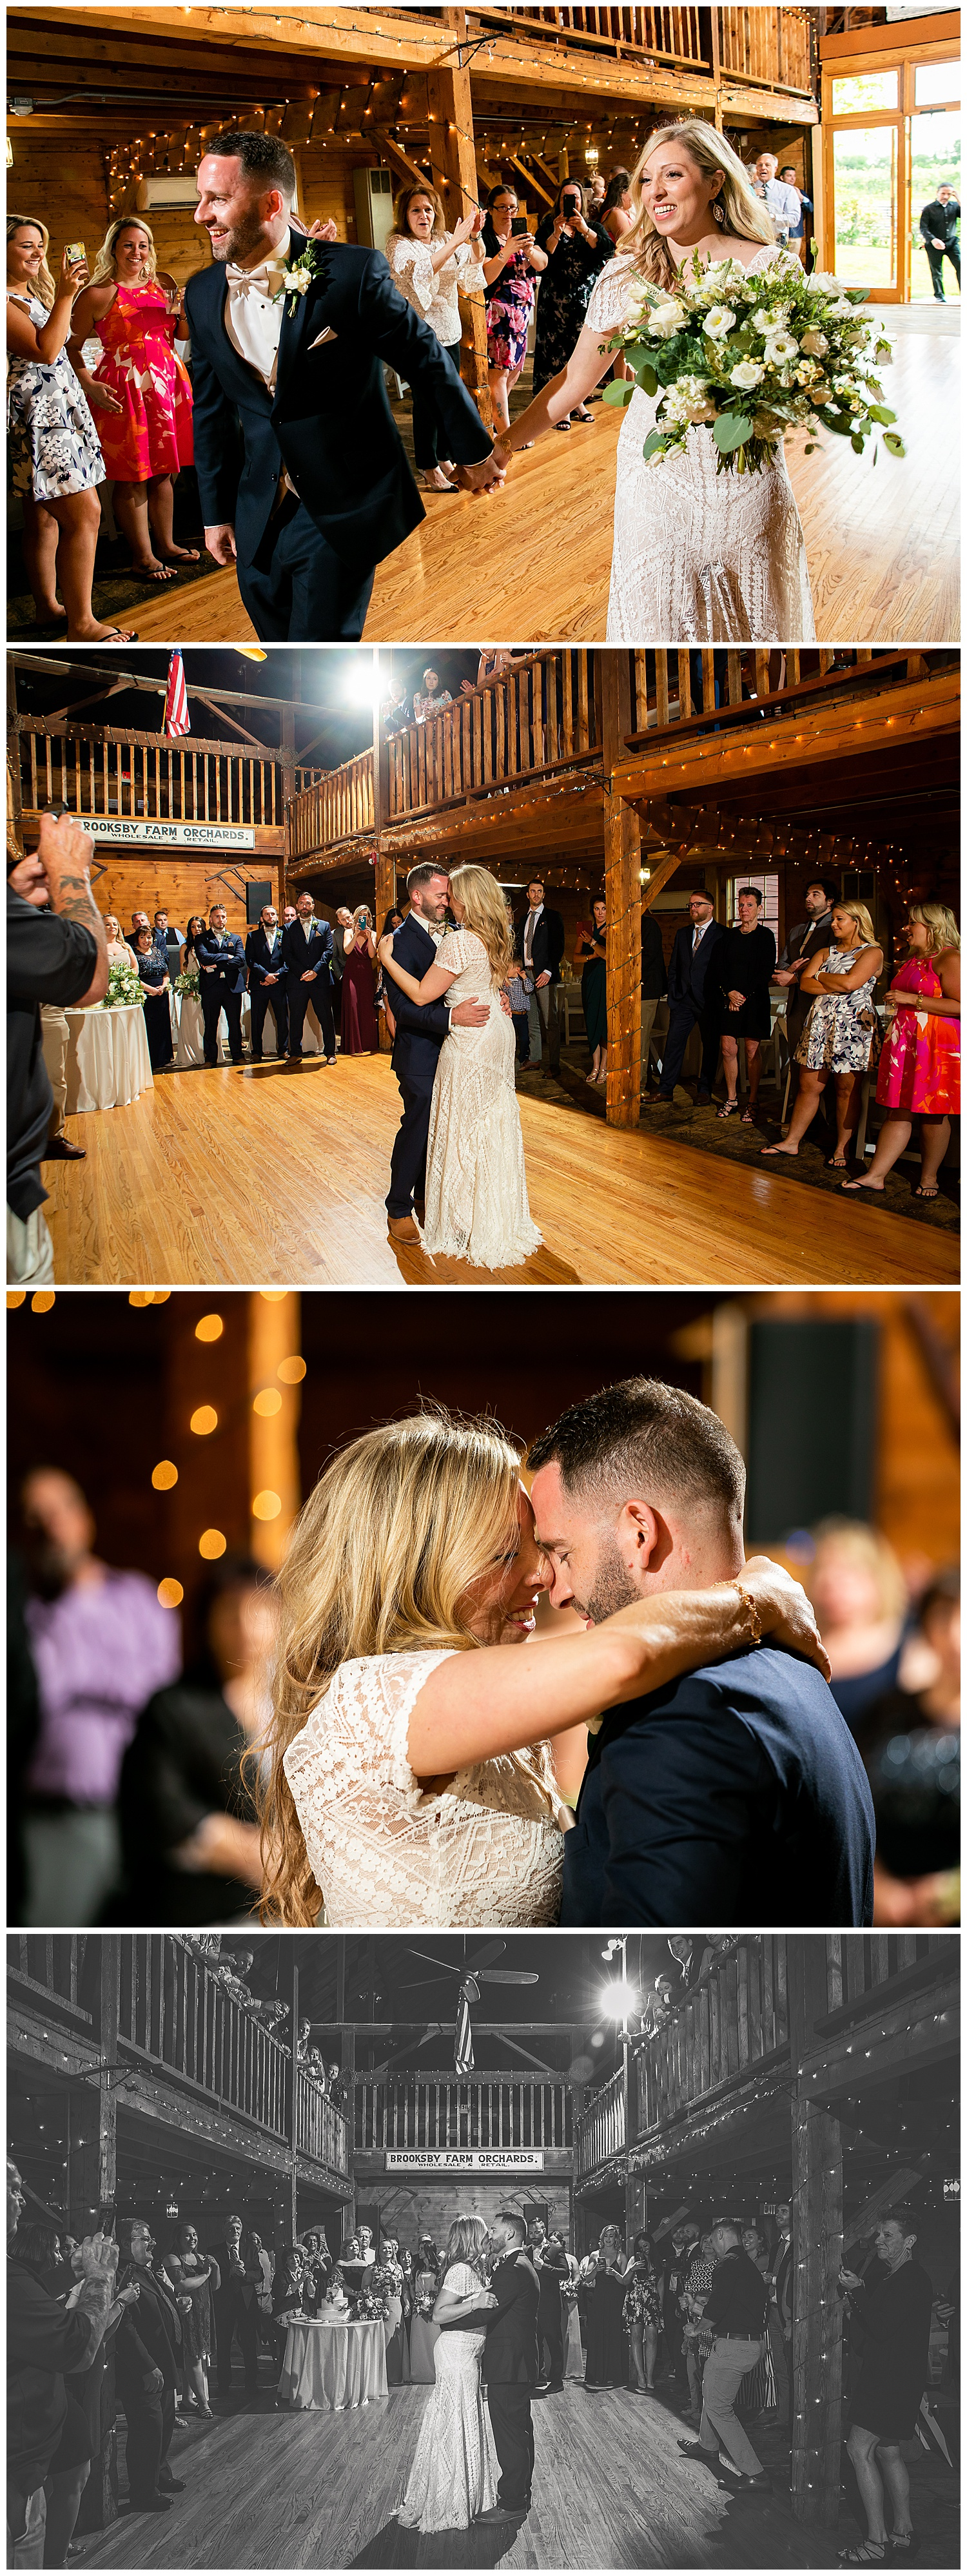 Introductions & First Dance,social media,